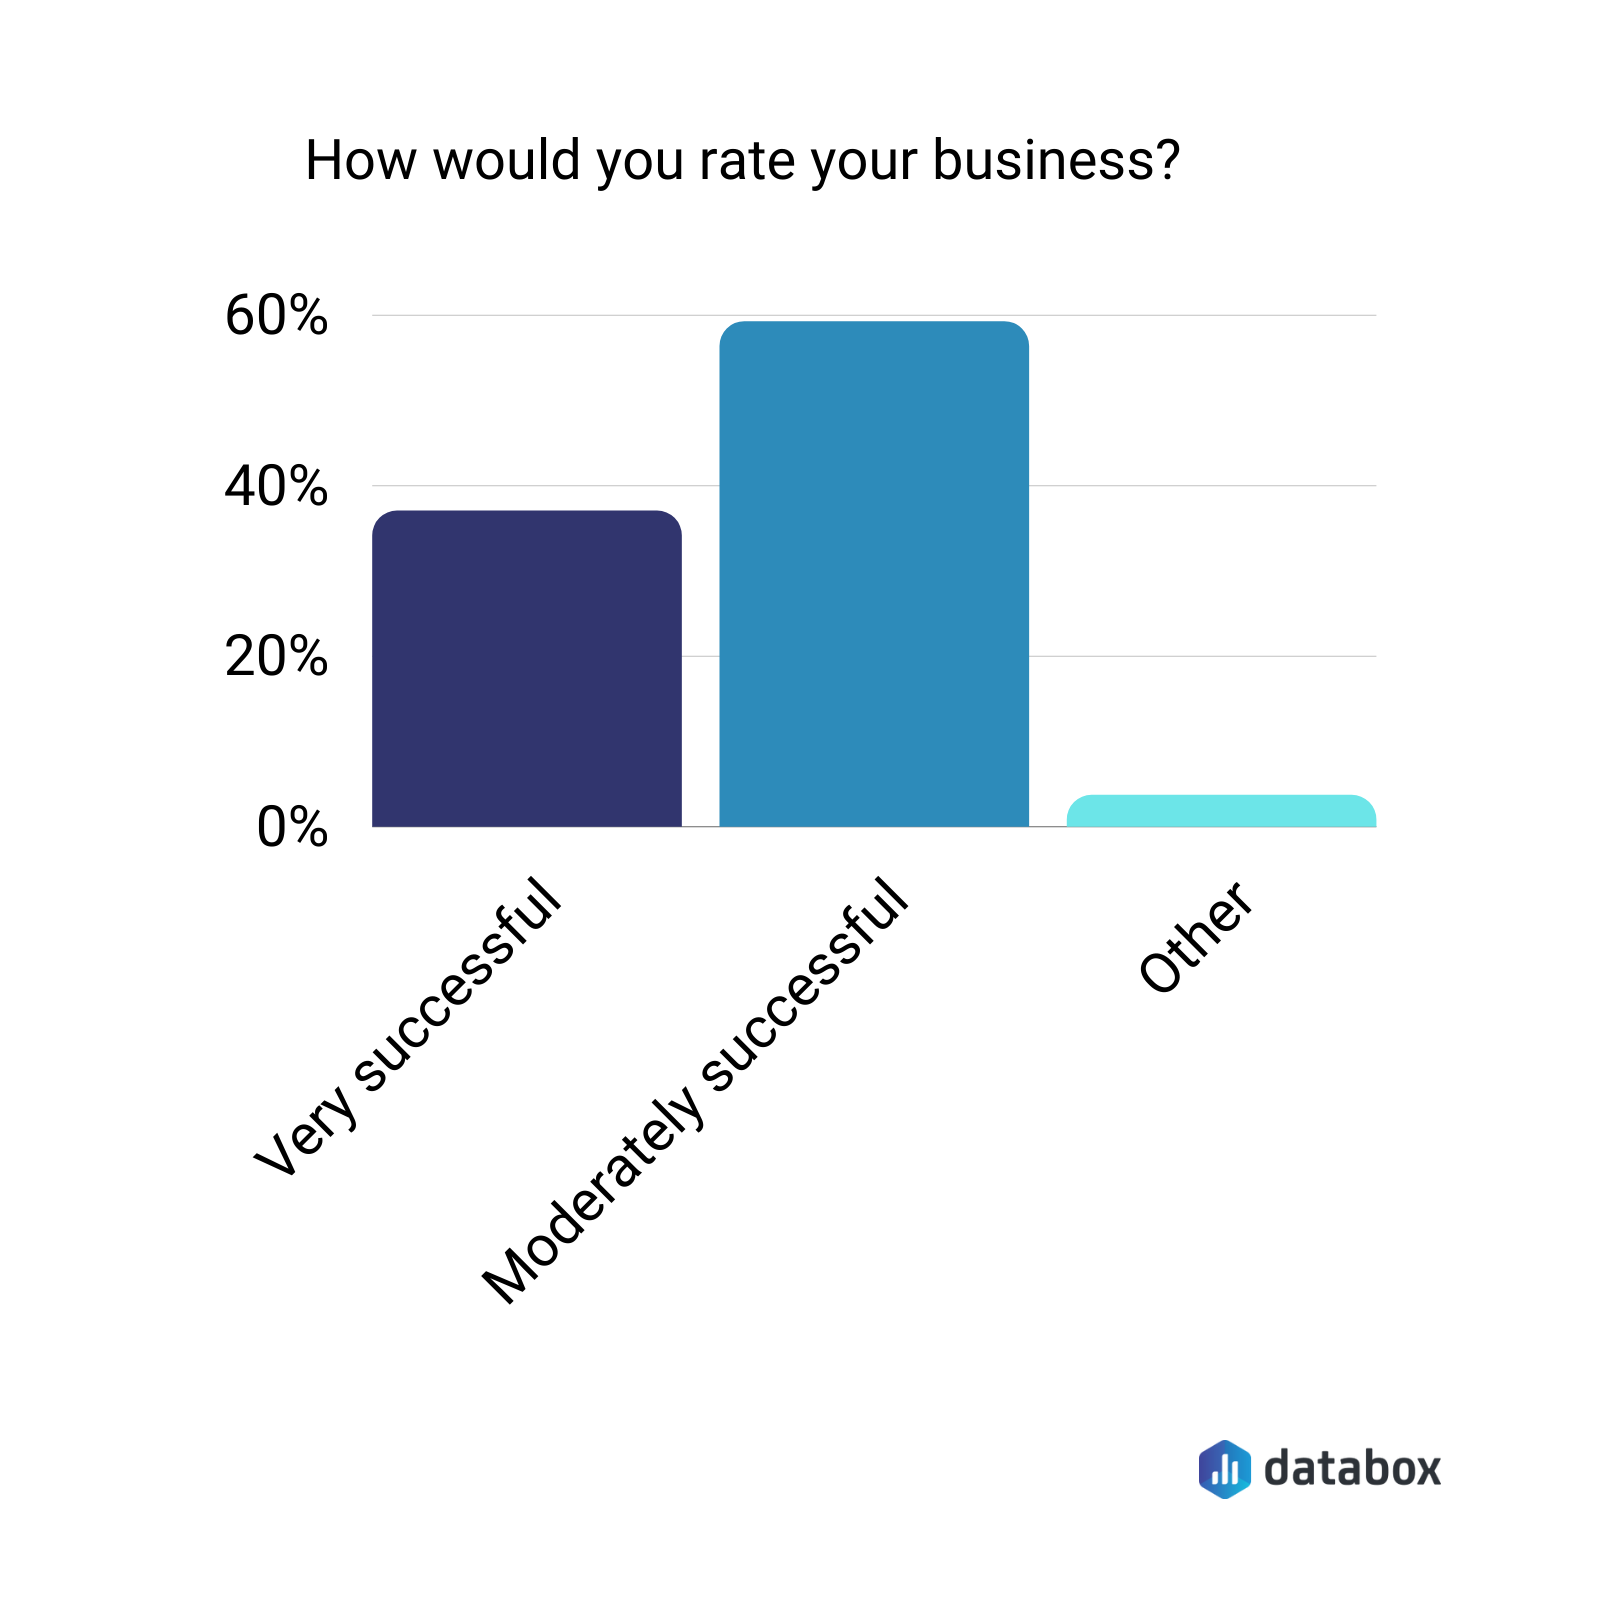 How would you rate your business?